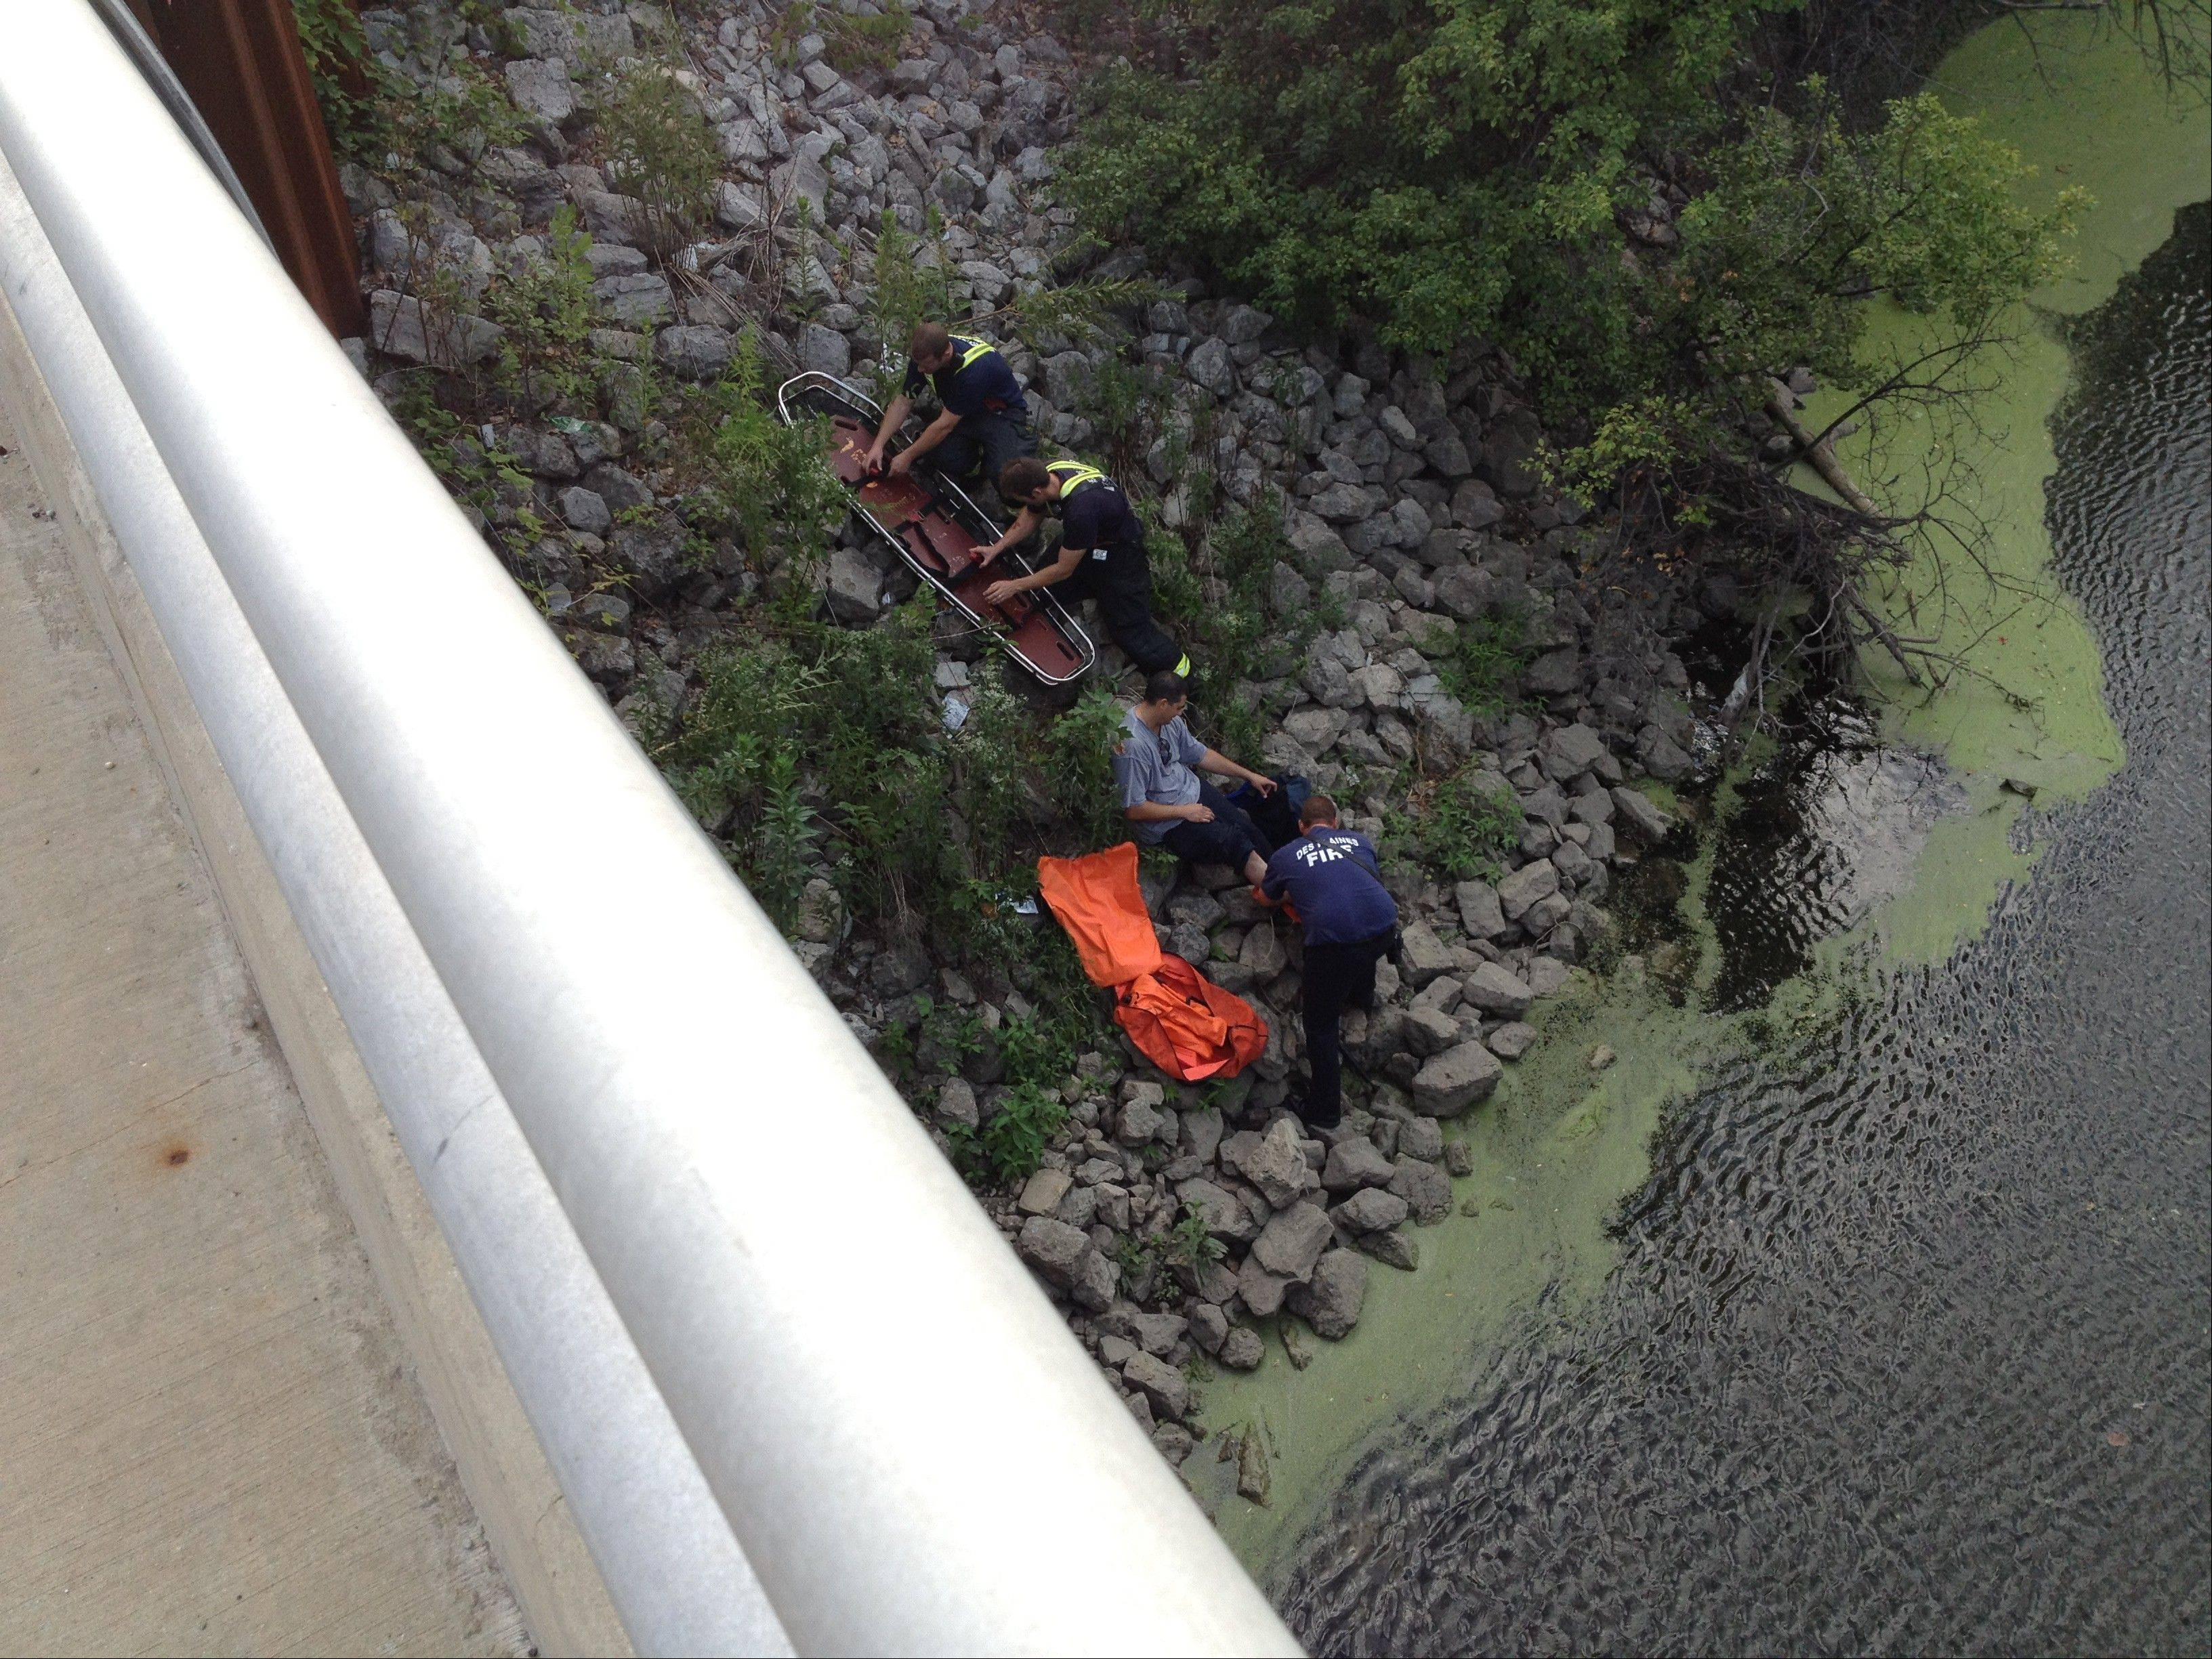 Des Plaines firefighter/paramedics Wednesday treat an injured man with a broken leg who was stuck on a bank of the Des Plaines River. The man had to be placed in a basket stretcher to lift him up onto the Golf Road bridge.